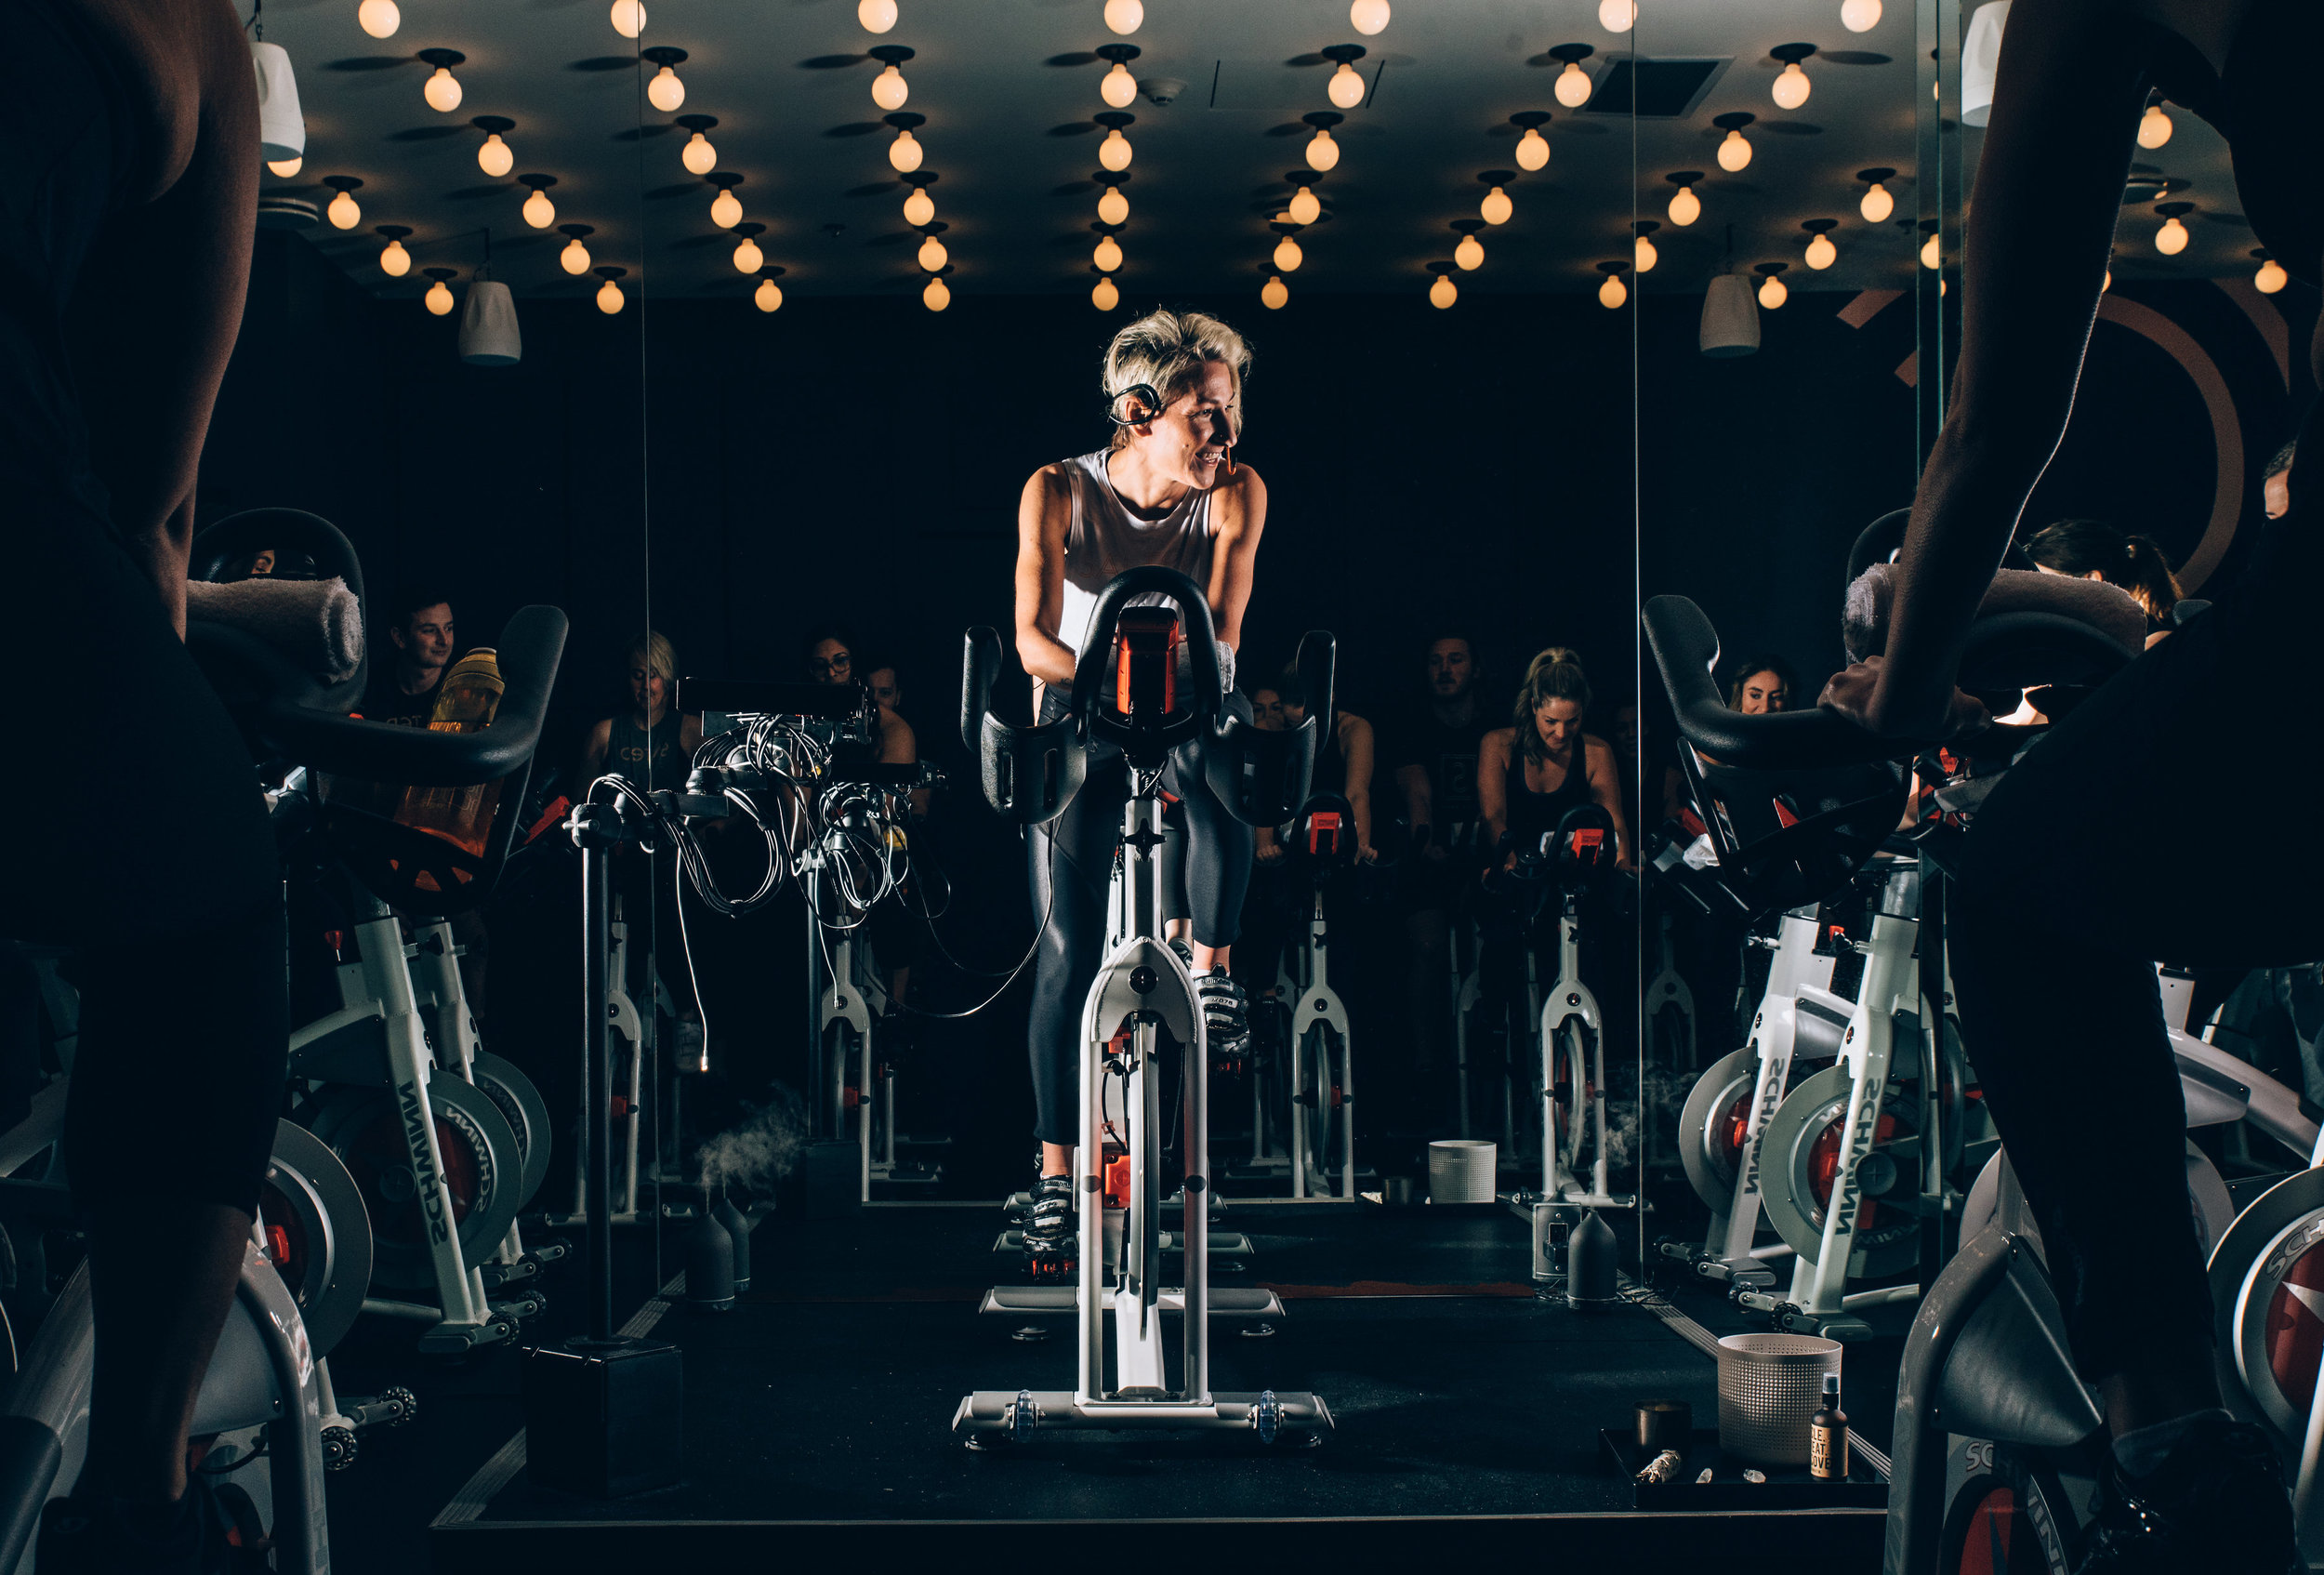 Millie_SaltedCycle_BenOwensPhotography_GroupSpinClass